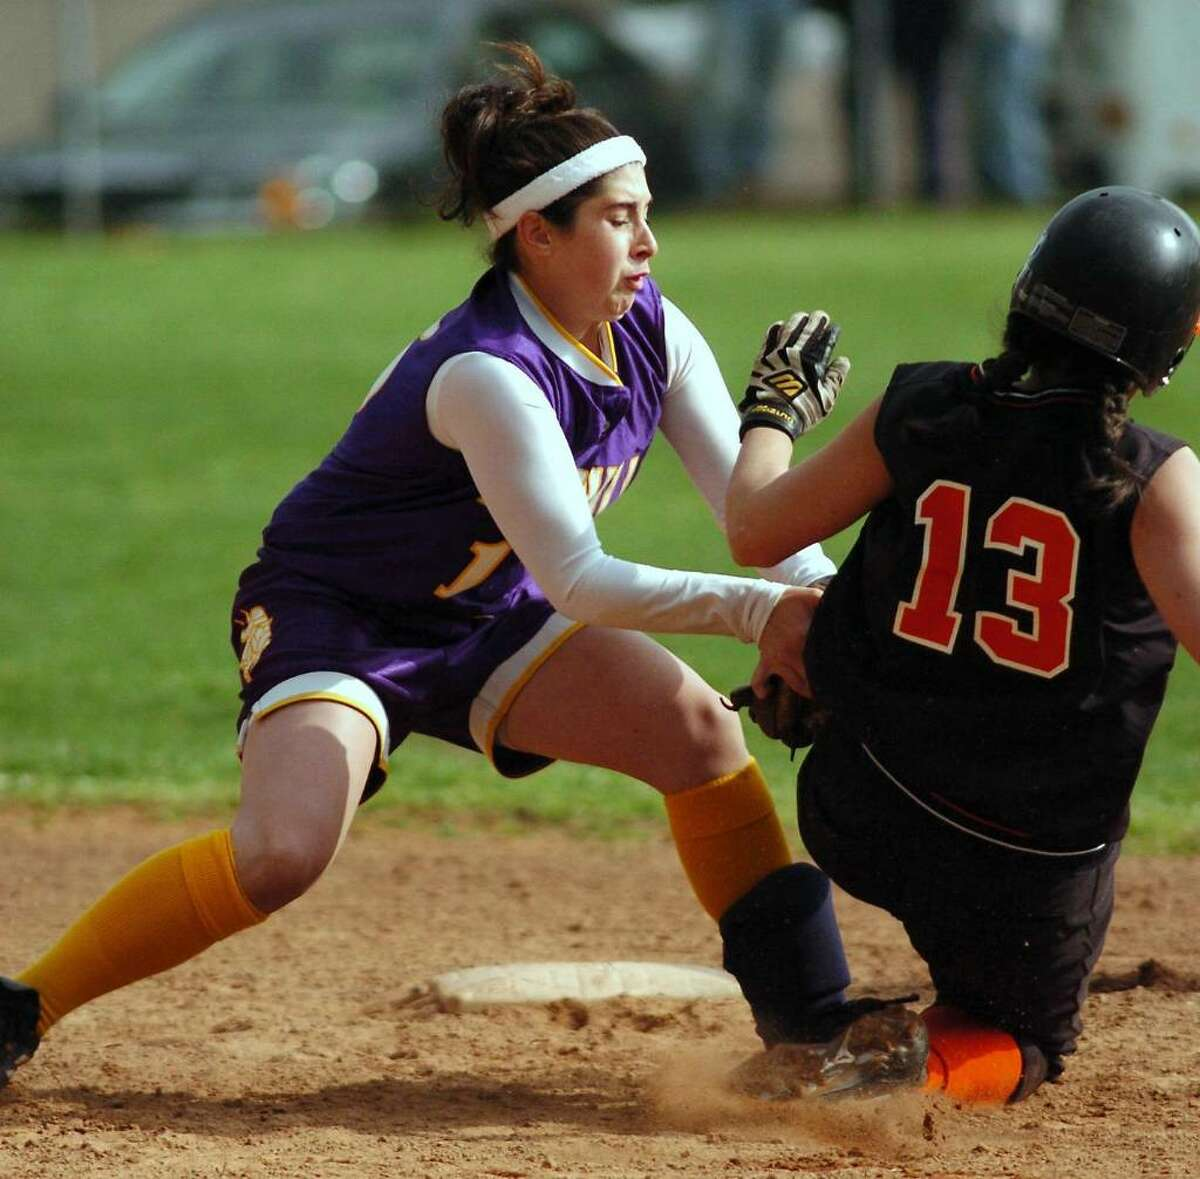 2005: Westhill's Rachel Sottosanti puts the tag on Stamford's Annie Cordeiro at second base on an attempted steal during action at Westhill.